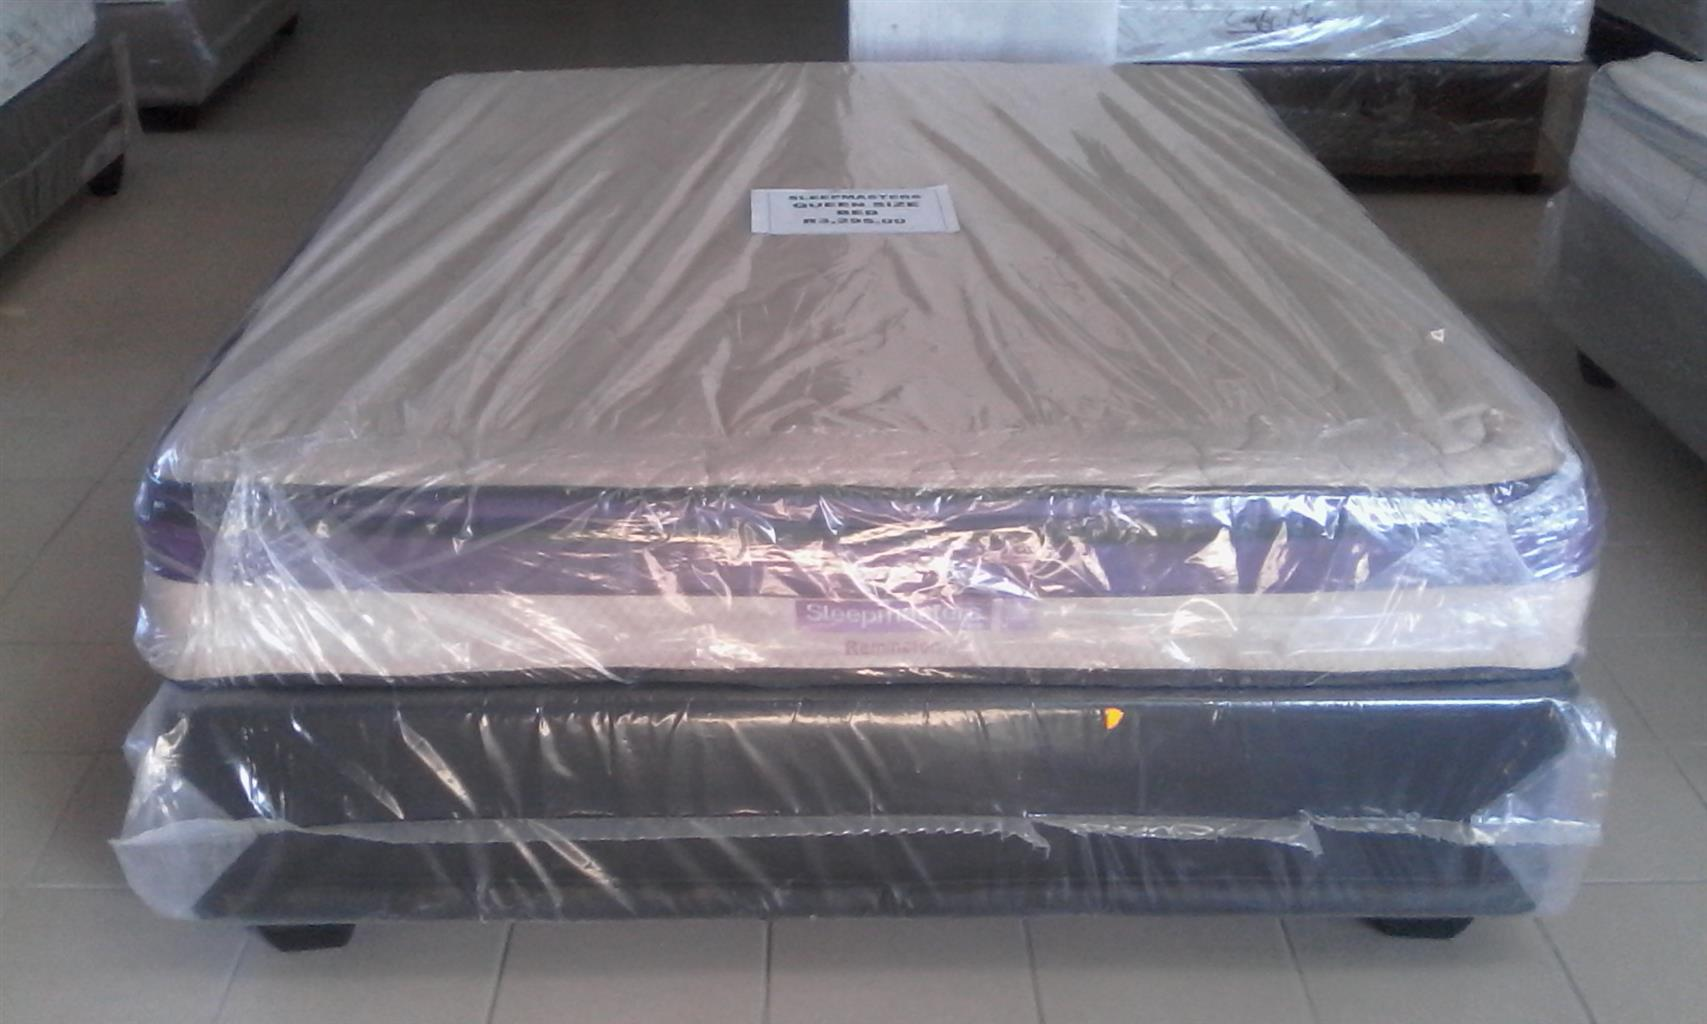 New Queen Size Restonic/Edblo/Sleepmasters/Comfy Max/Sealy Beds from R2900